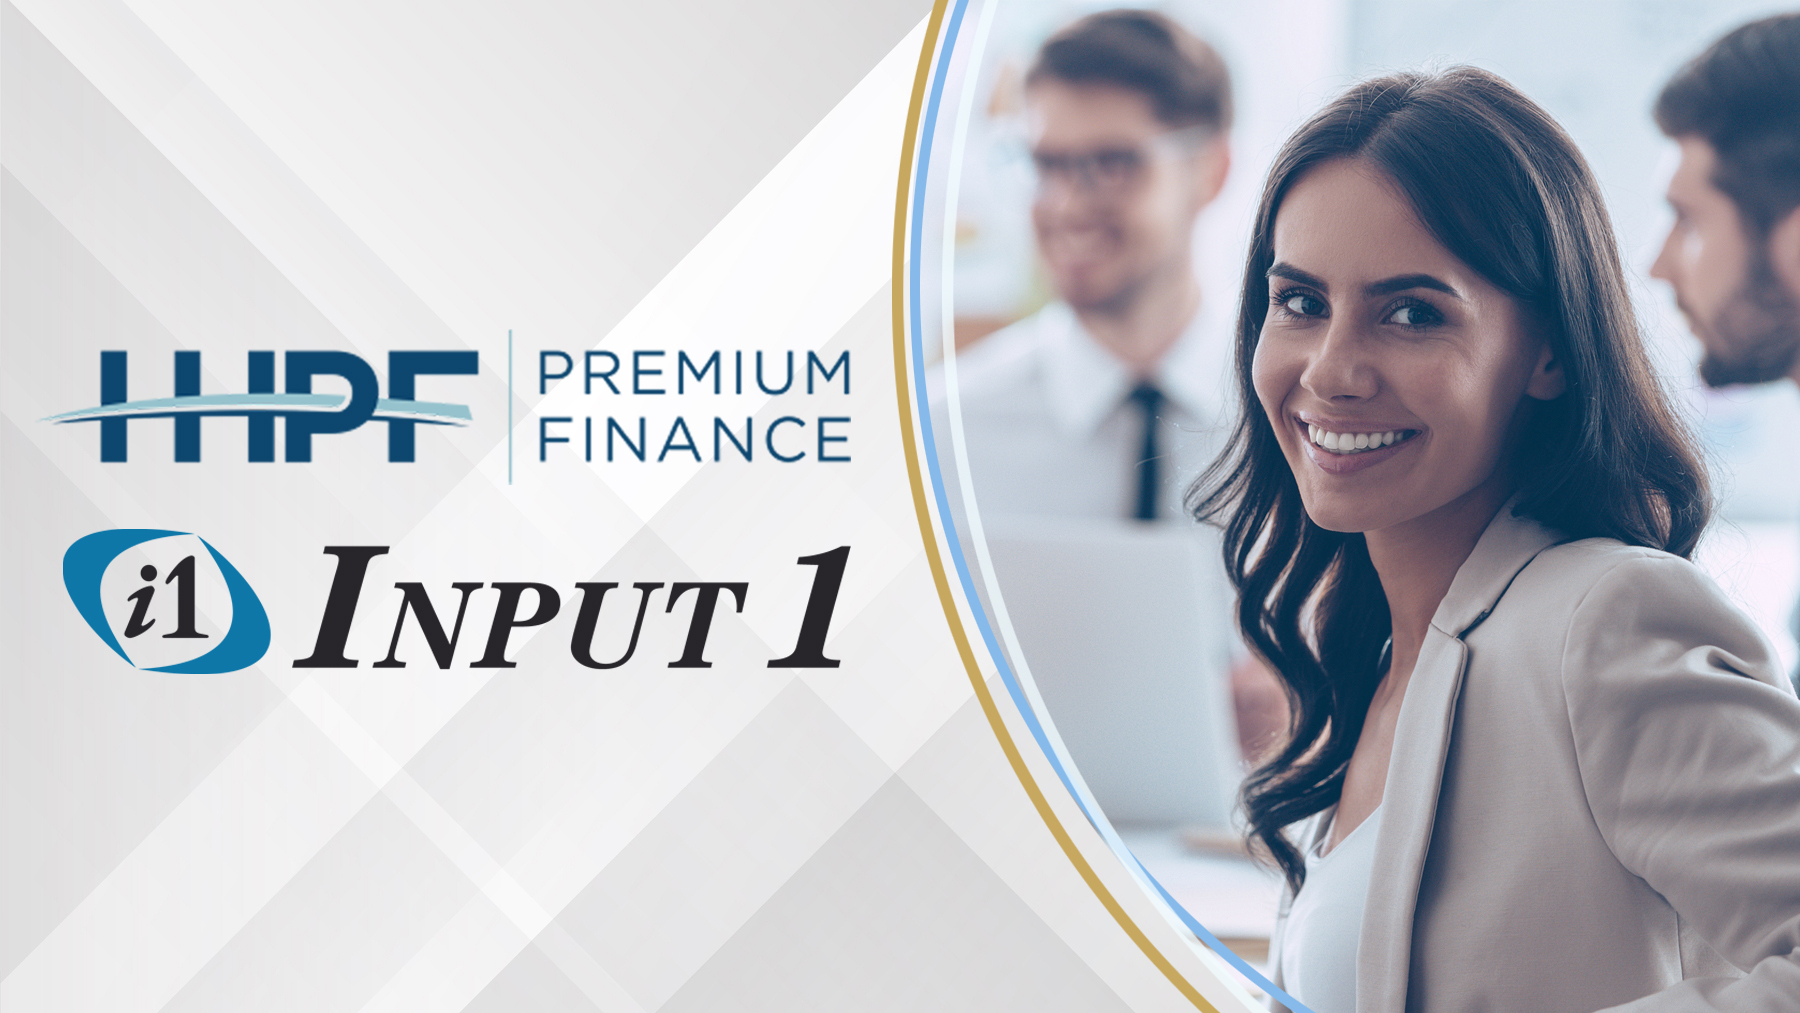 HHPF, Inc. appoints industry leader Input 1 to help grow their Premium Finance Business